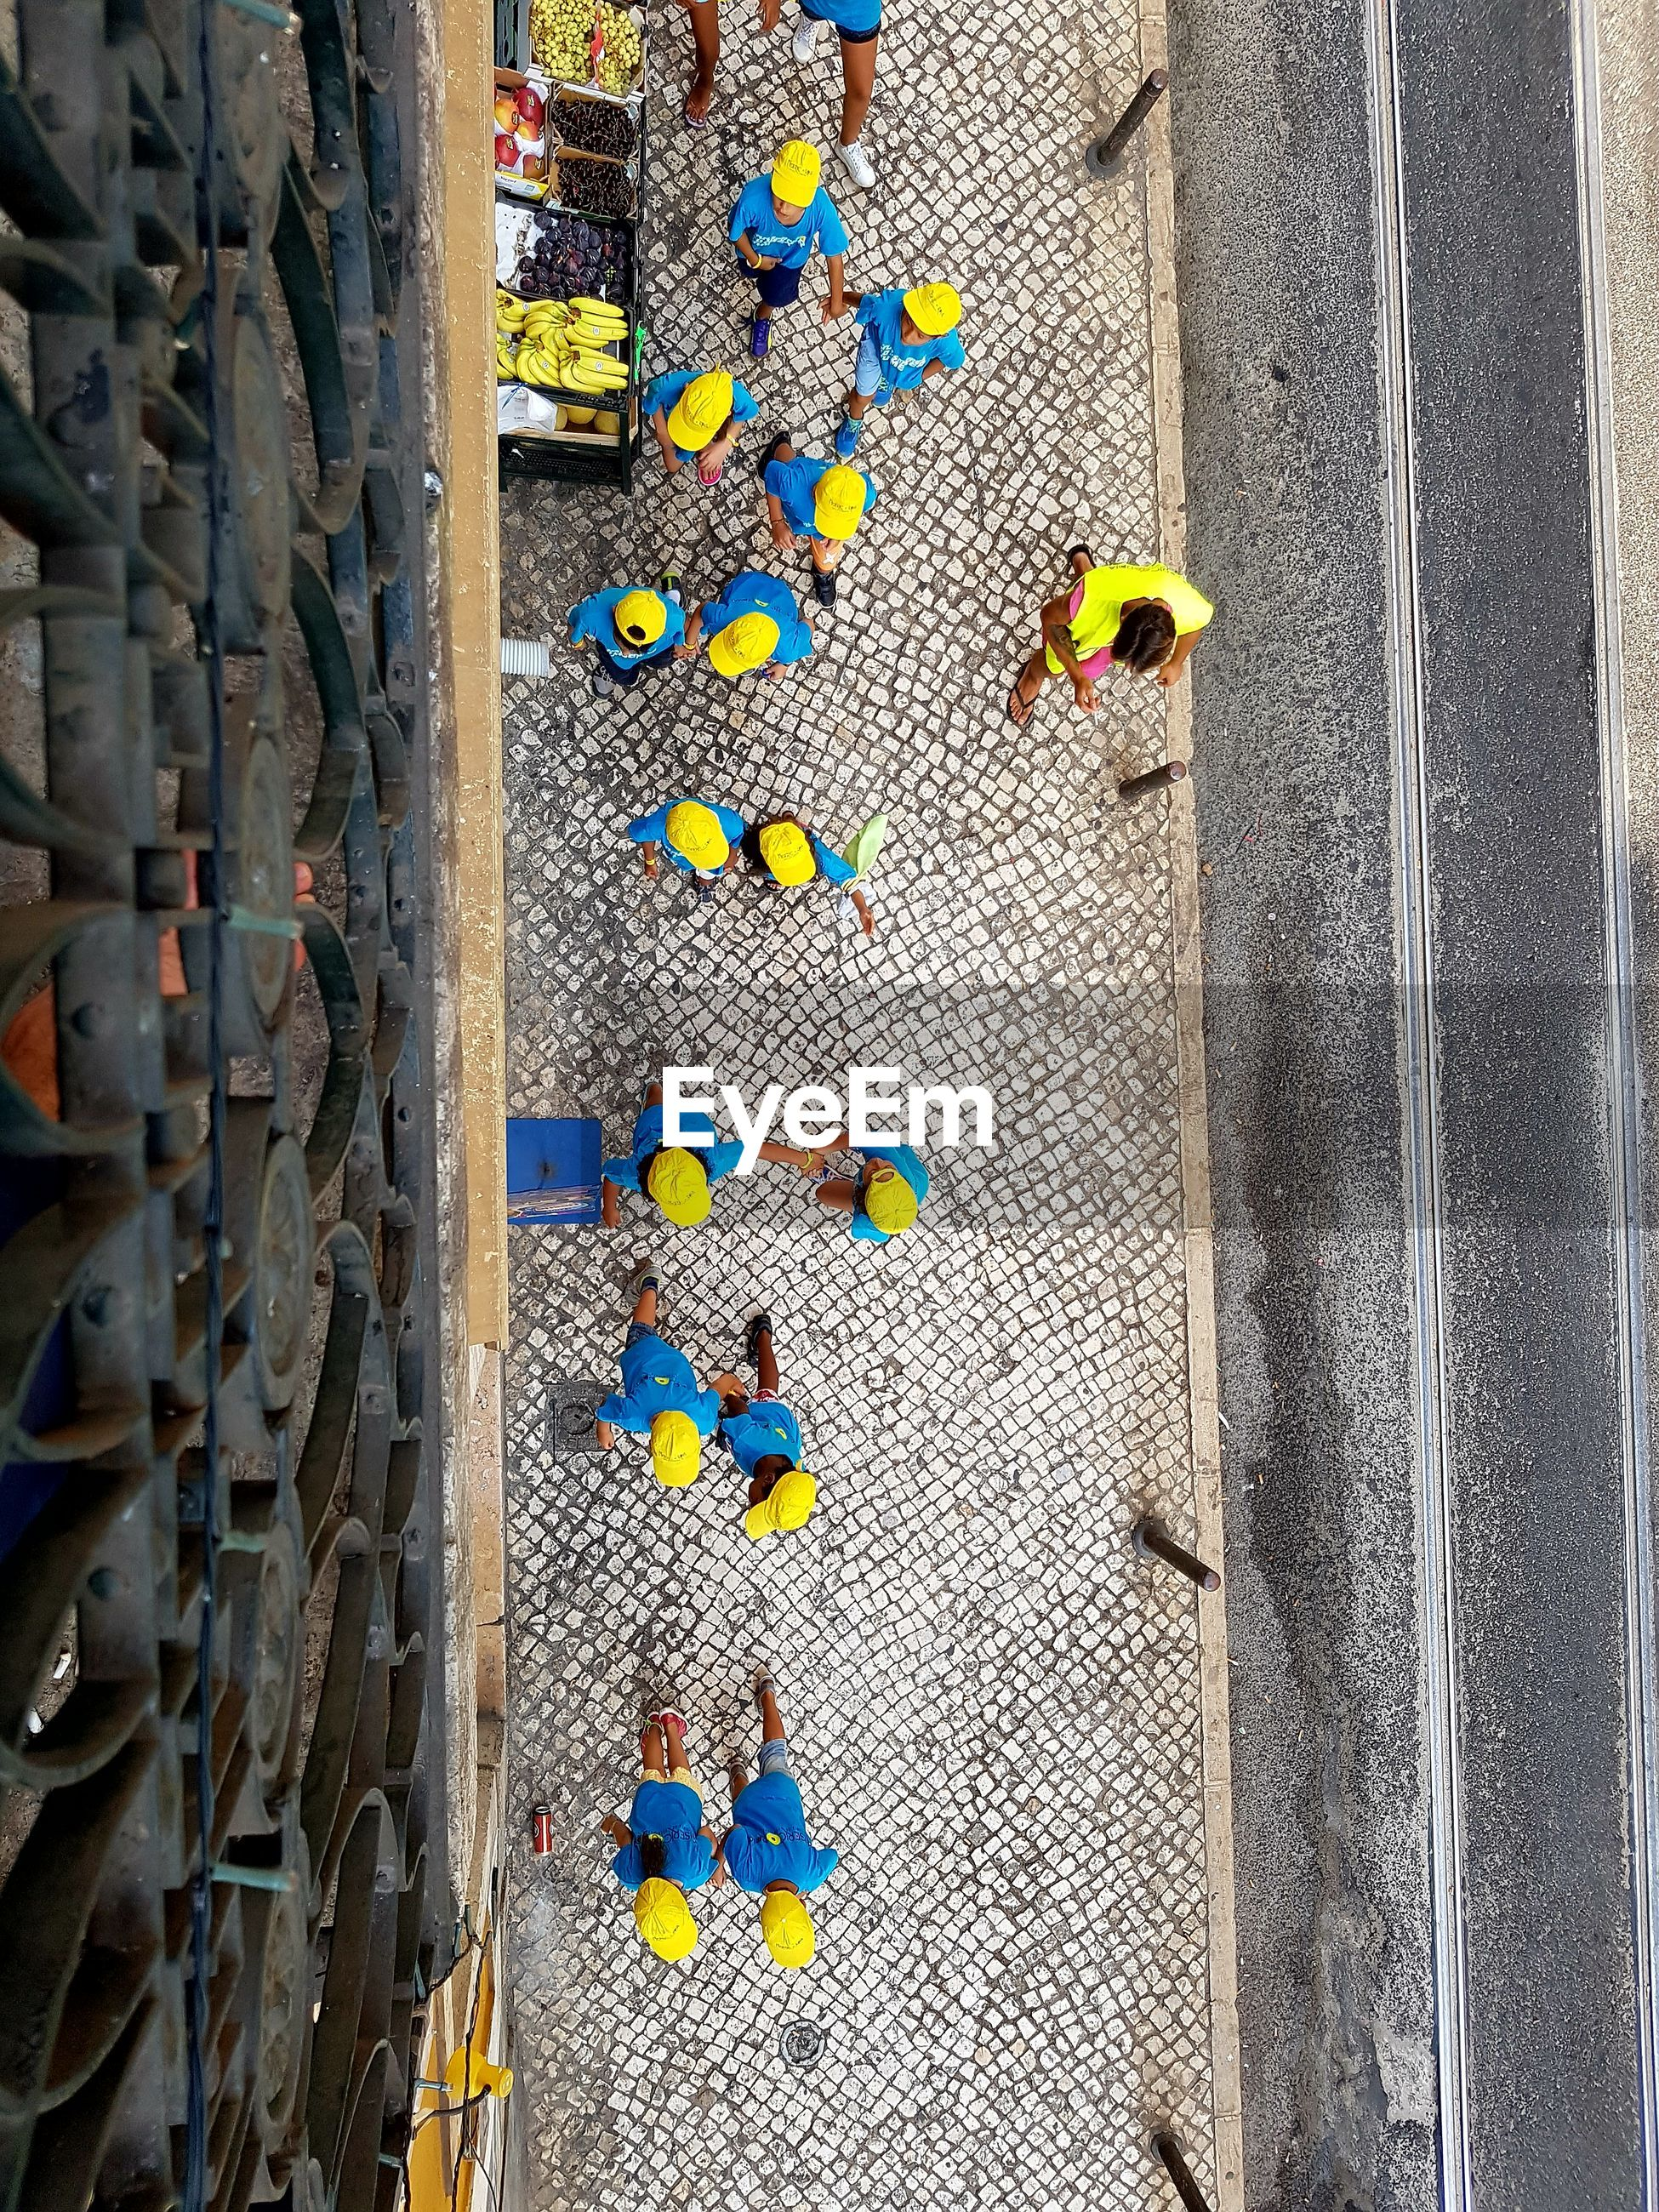 Directly above shot of people on sidewalk